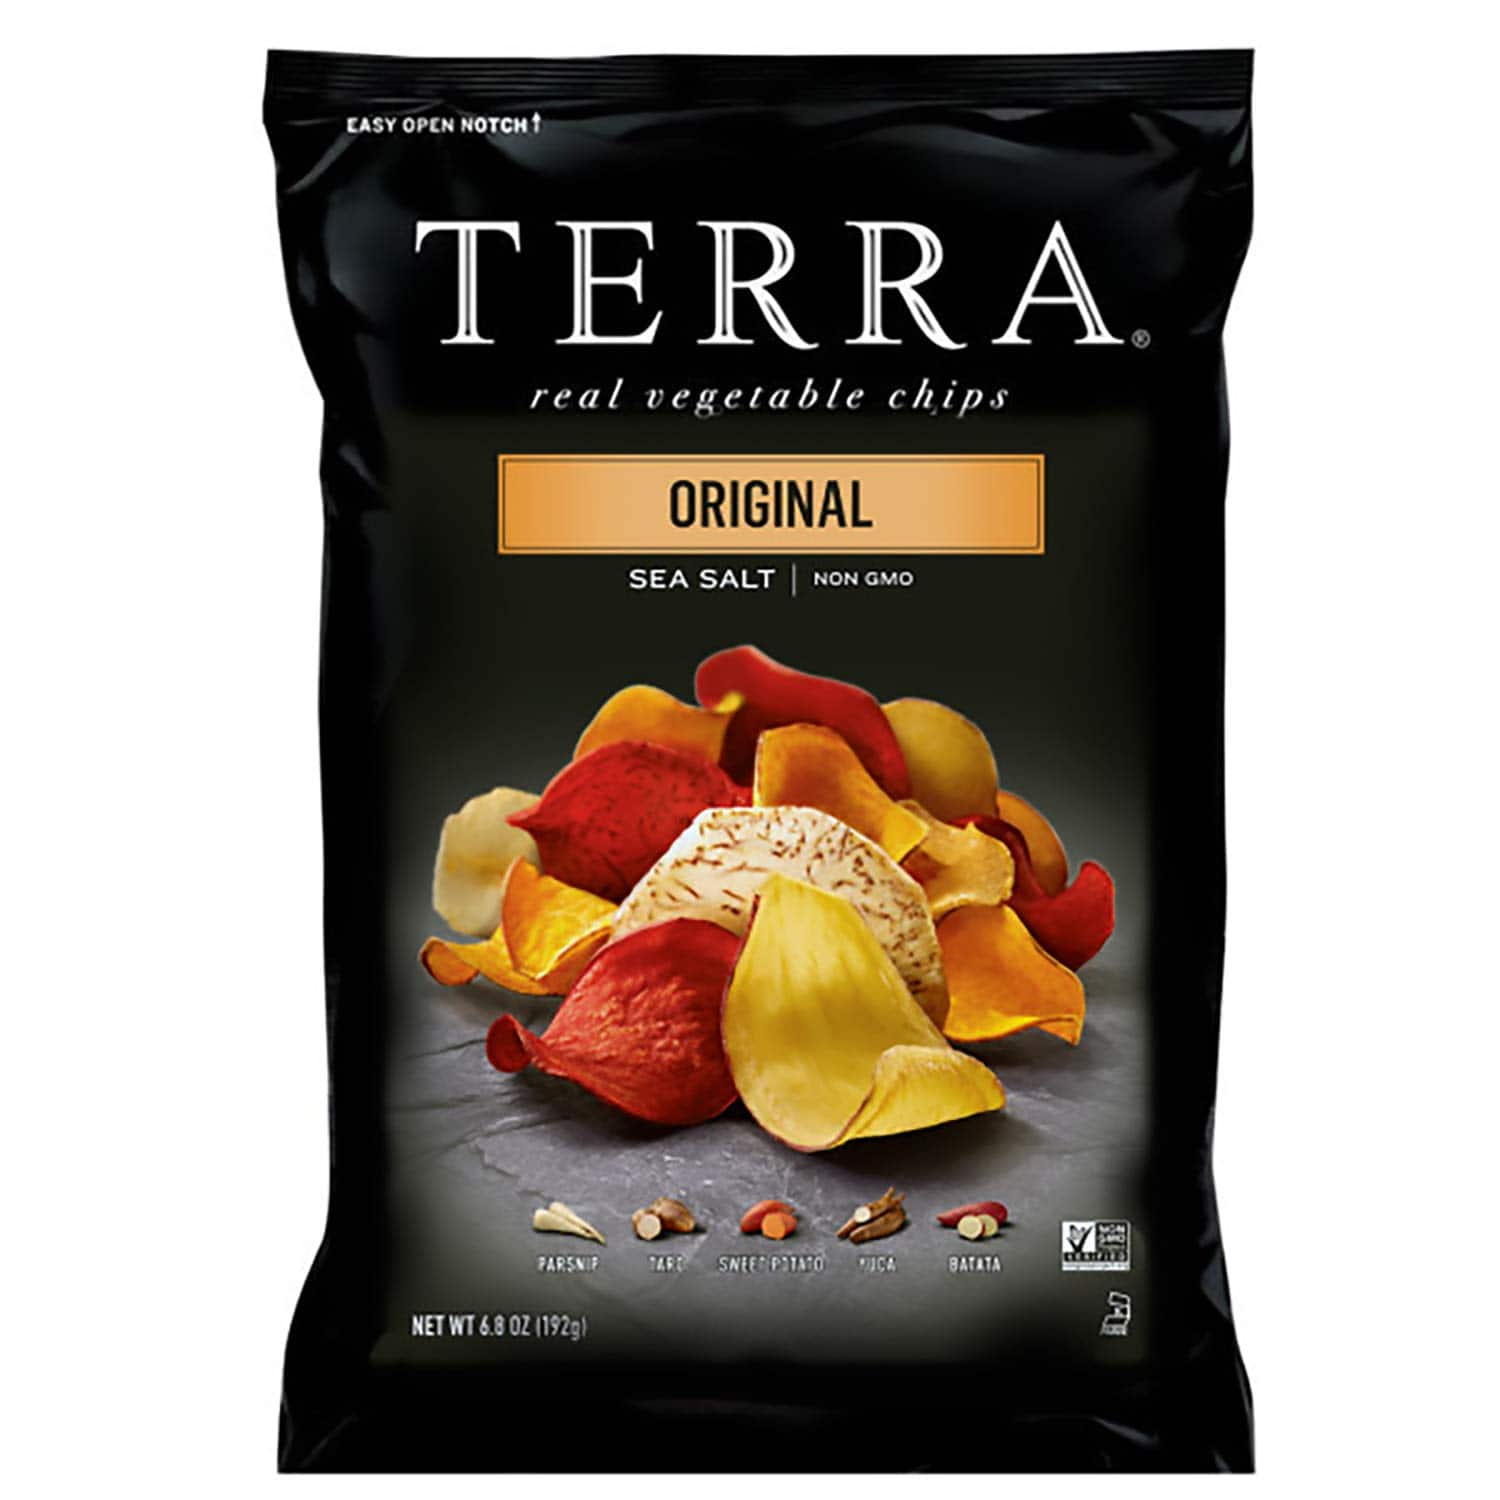 6.8oz TERRA Original Chips with Sea Salt $2.38 w/ Subscribe & Save